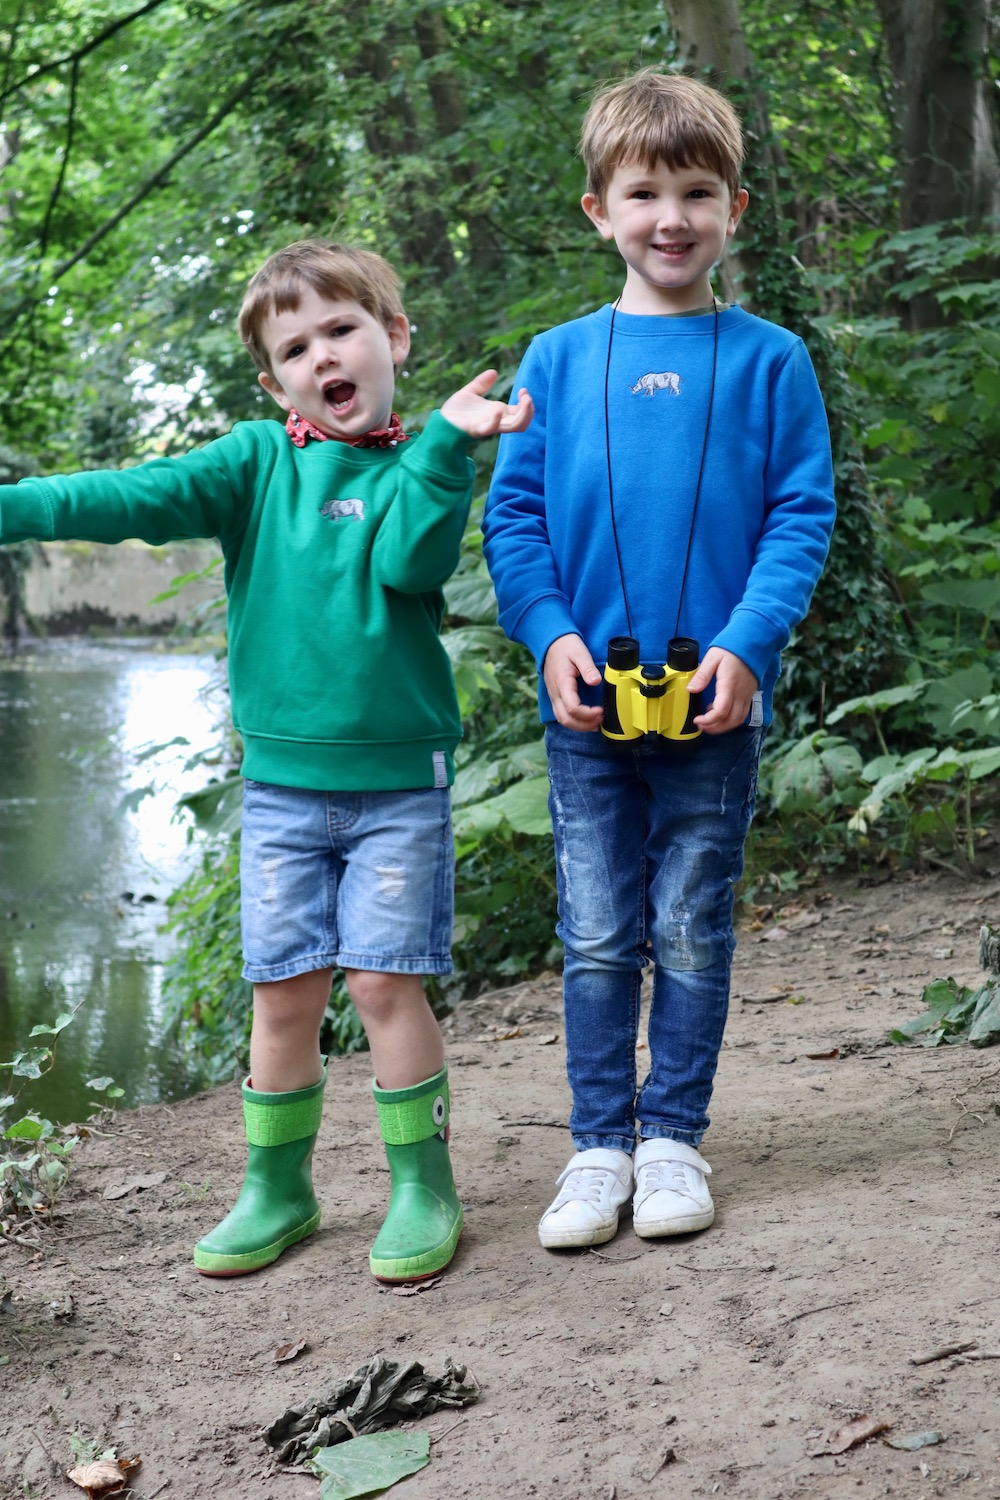 tips to get your kids playing outdoors more